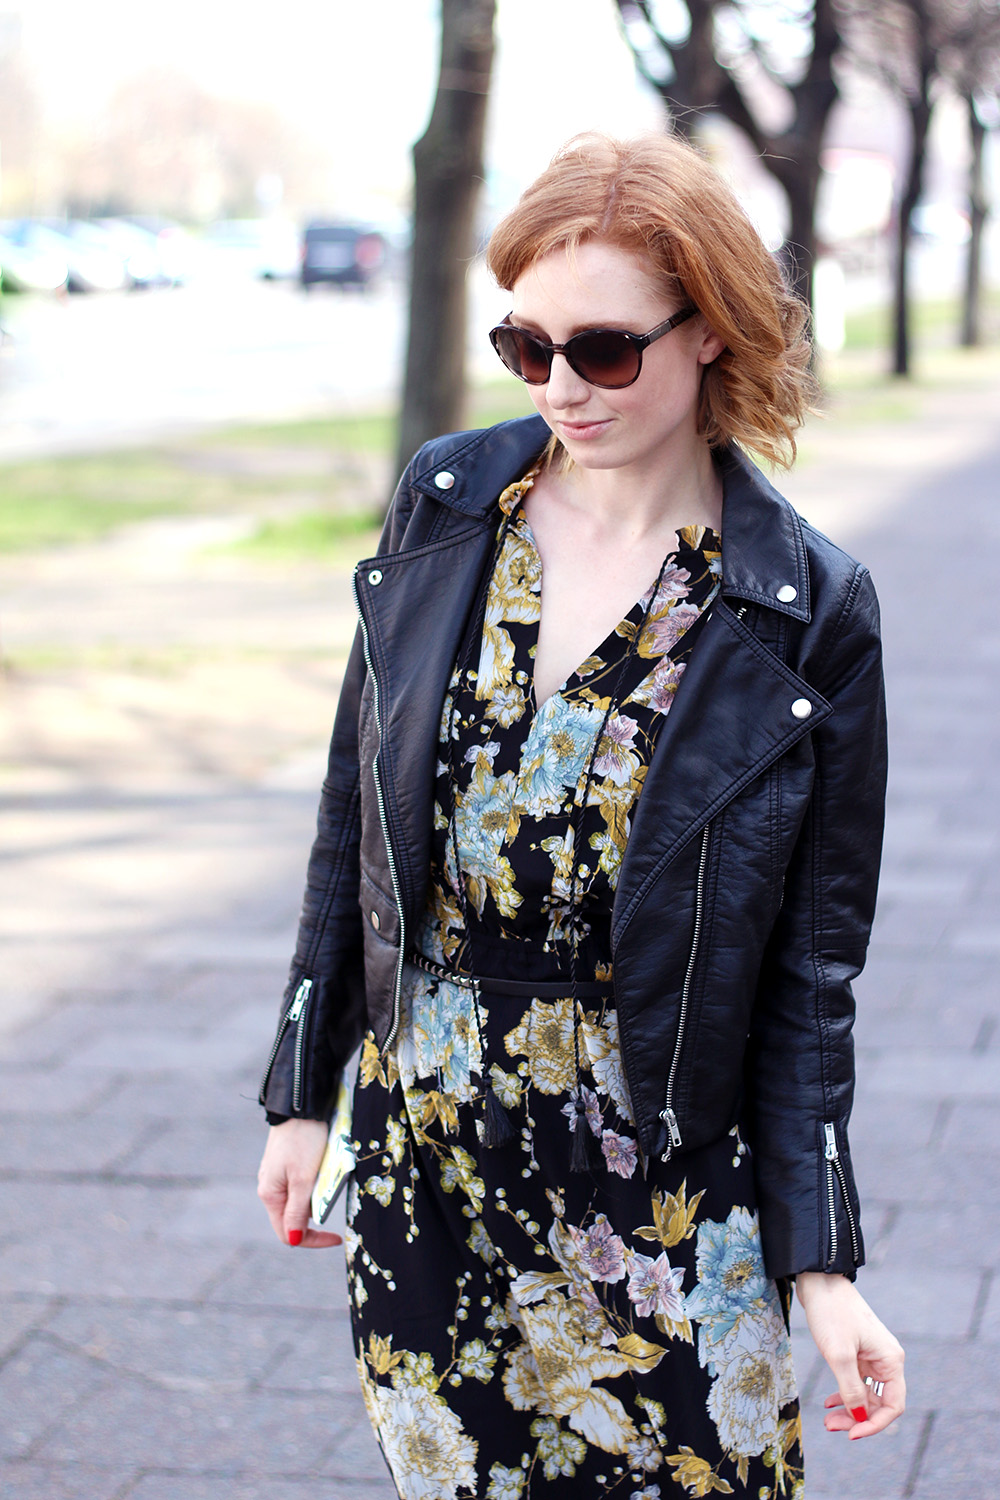 Übergangsjacke, Maxikleid, Blumen Print, Gelb, Türkis, schwarze Biker Jacke, Frühling, Mode, Trend, Hippie, Coachella, Outfit, Frühlingsmode, blonde Haare, helle Haut, Influencer, Deutschland, Berlin, Streetstyle, Mode Blog, Advance Your Style, advanceyourstyle